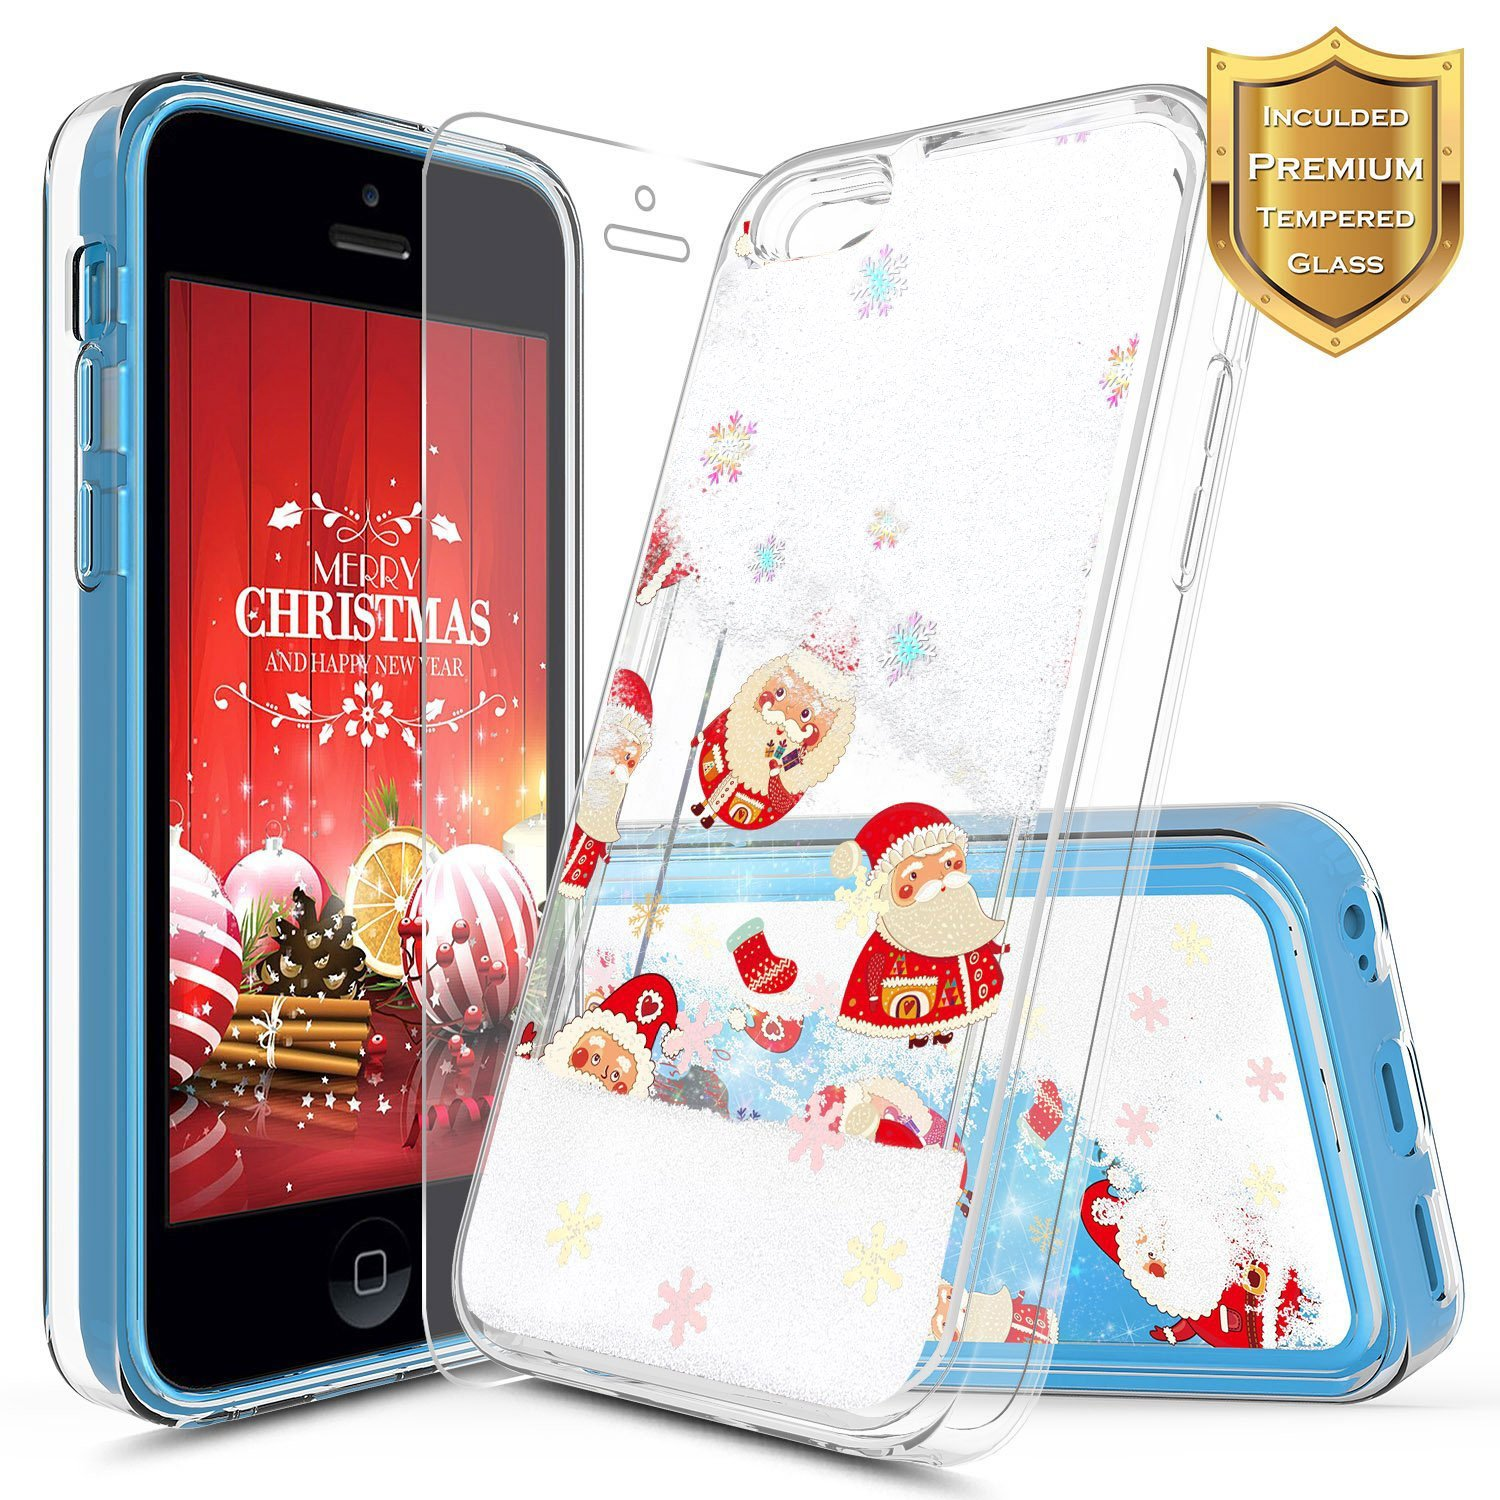 iPhone 5C Case w/[Screen Protector HD Clear], NageBee Glitter Liquid Quicksand Waterfall Floating Flowing Sparkle Shiny Bling Diamond Girls Cute Case iPhone 5C -Purple/Blue NGBIPHONE5CLSZL